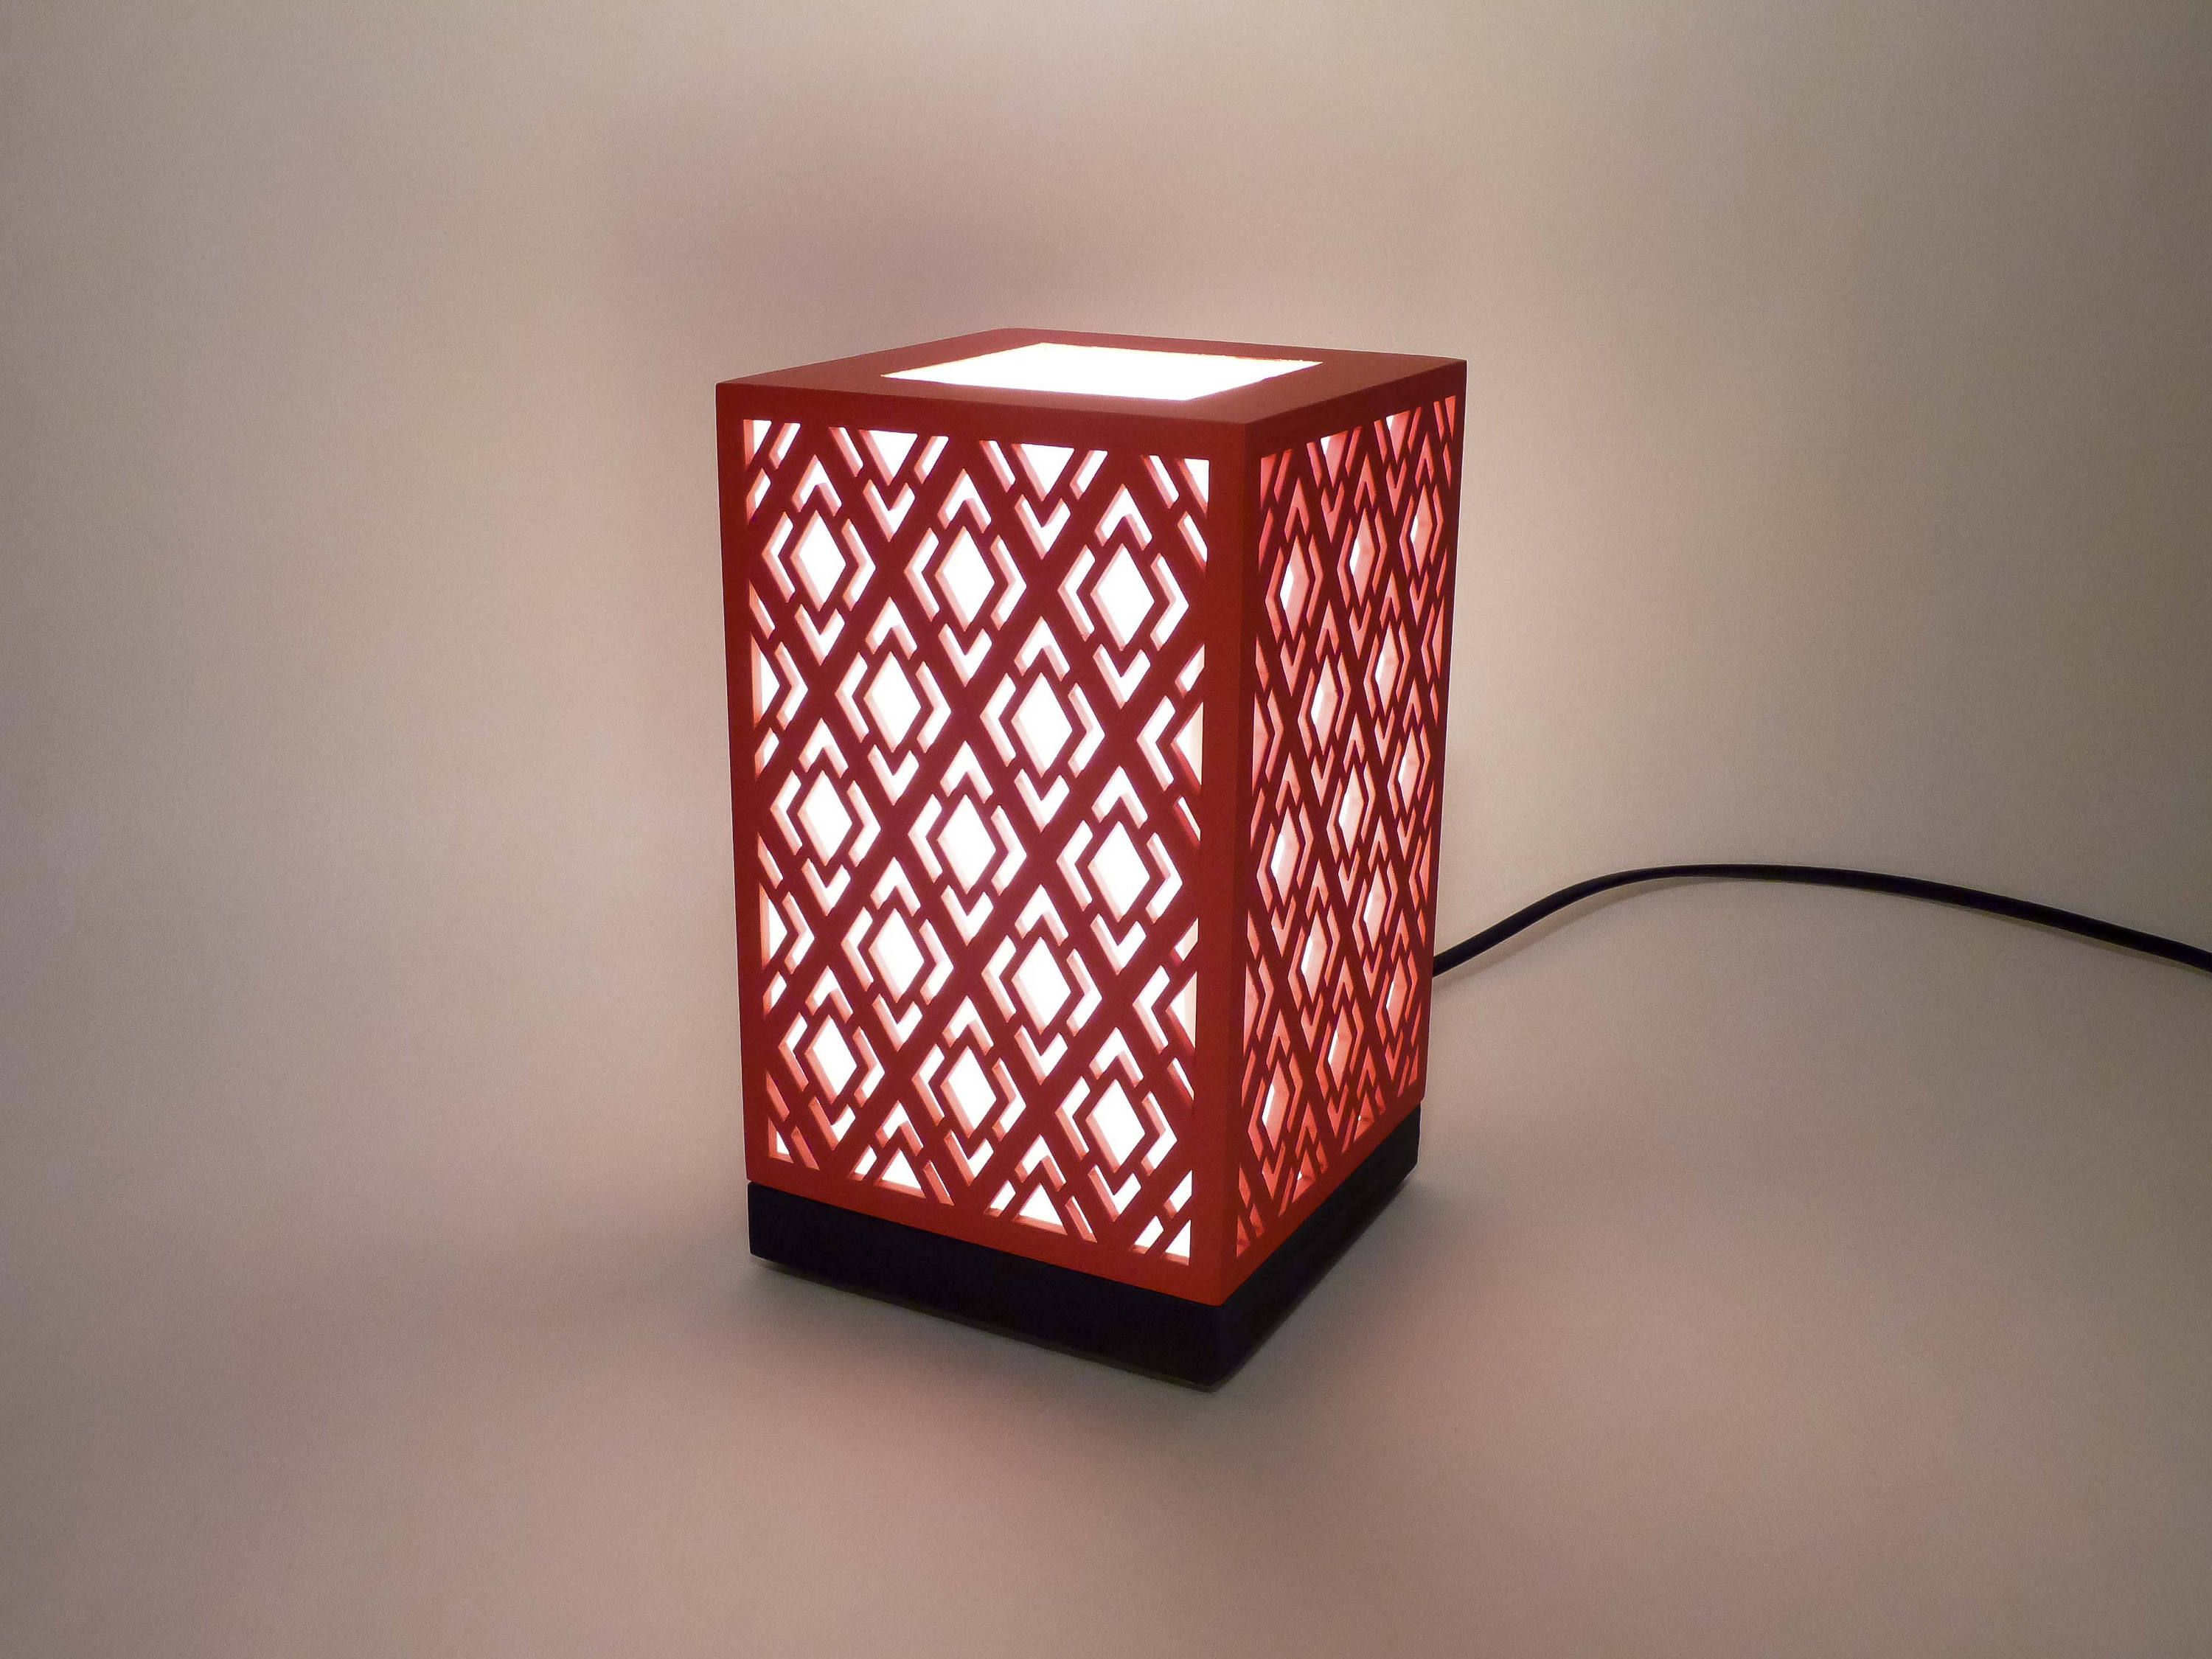 Lantern Table Lamp Housewarming Lighting Wooden Lamp Moroccan Pattern Wooden Gift Gift For Him Gift For Her Decorative Lamp Lanterne